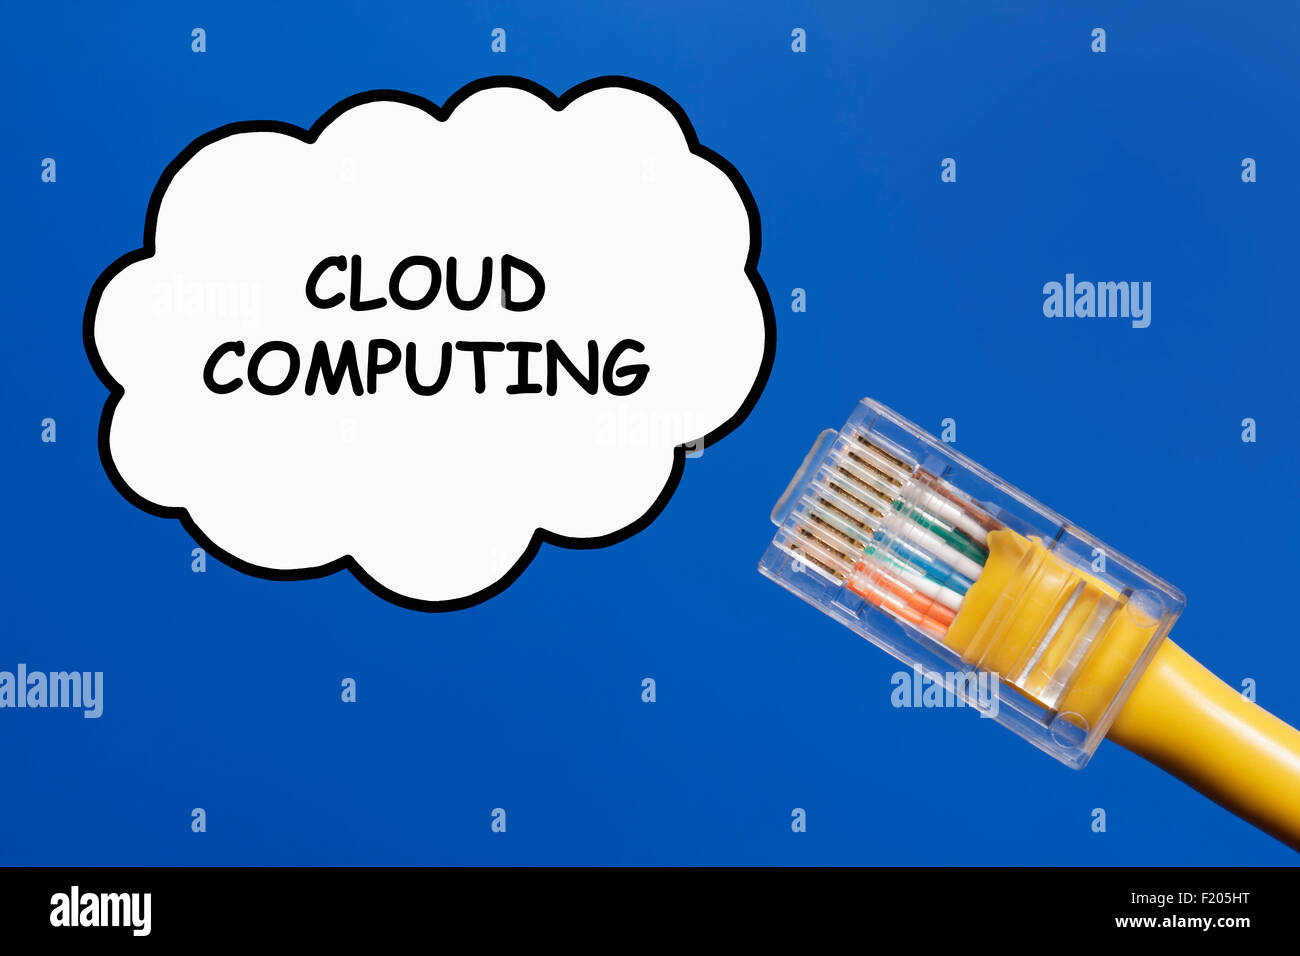 Cloud data storage/computing concept. LAN cable connecting into a cloud network on a plain sky blue background. Stock Photo